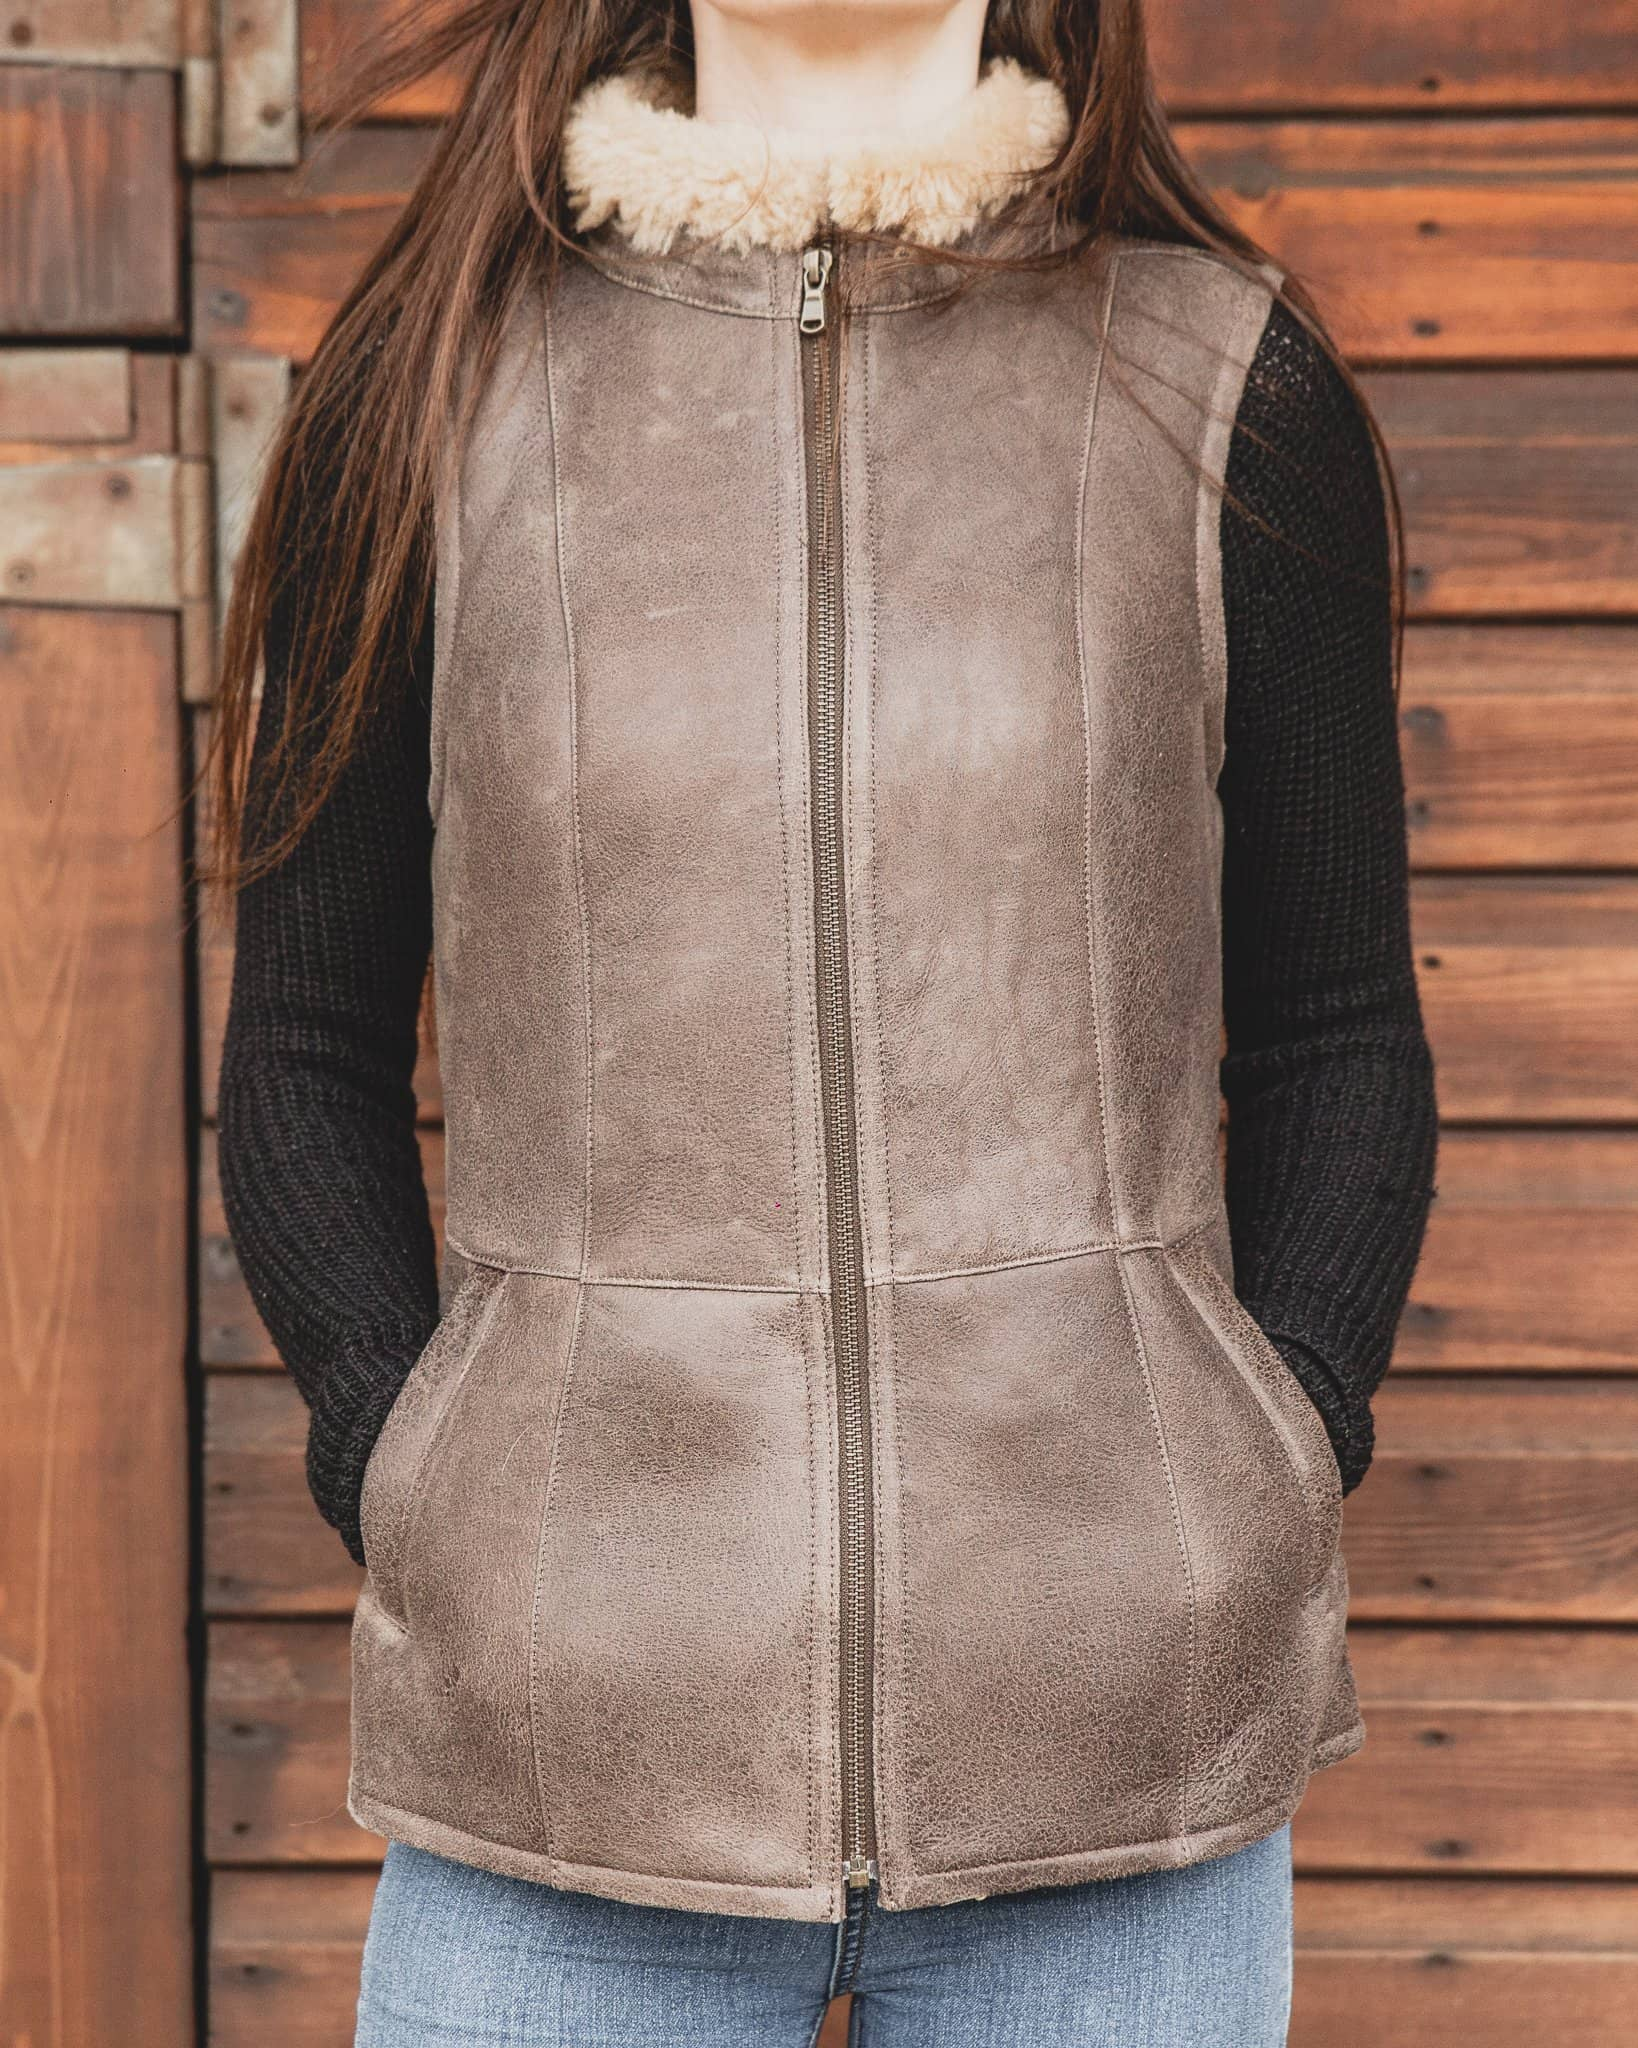 Nordvek womens sheepskin jacket 710-100 chocolate front open hands in pockets